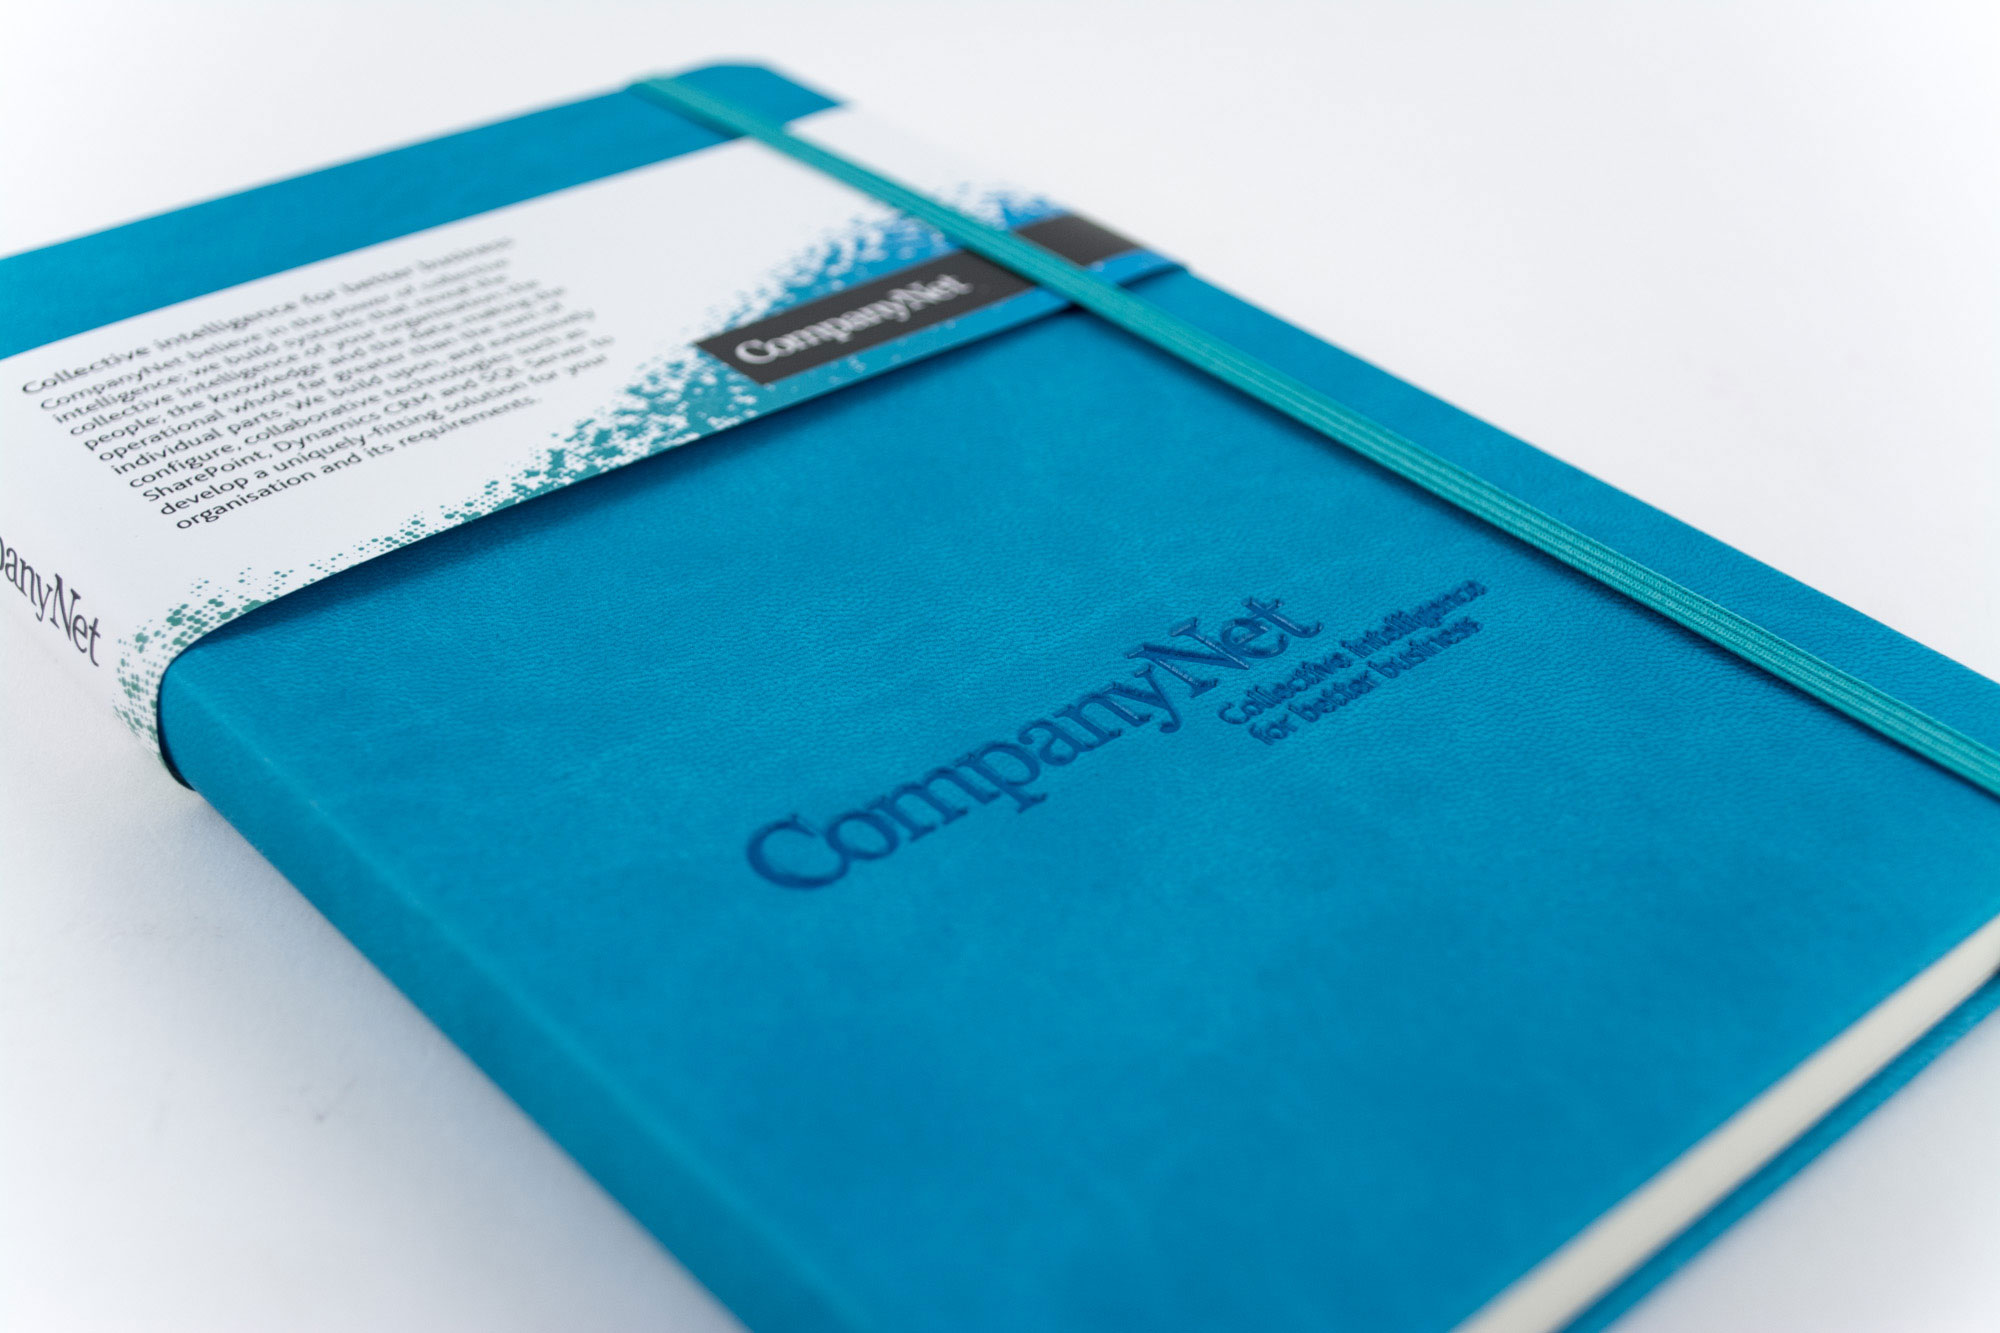 You can easily add more branding to your notebook through clever extras including custom printed belly-bands such as this